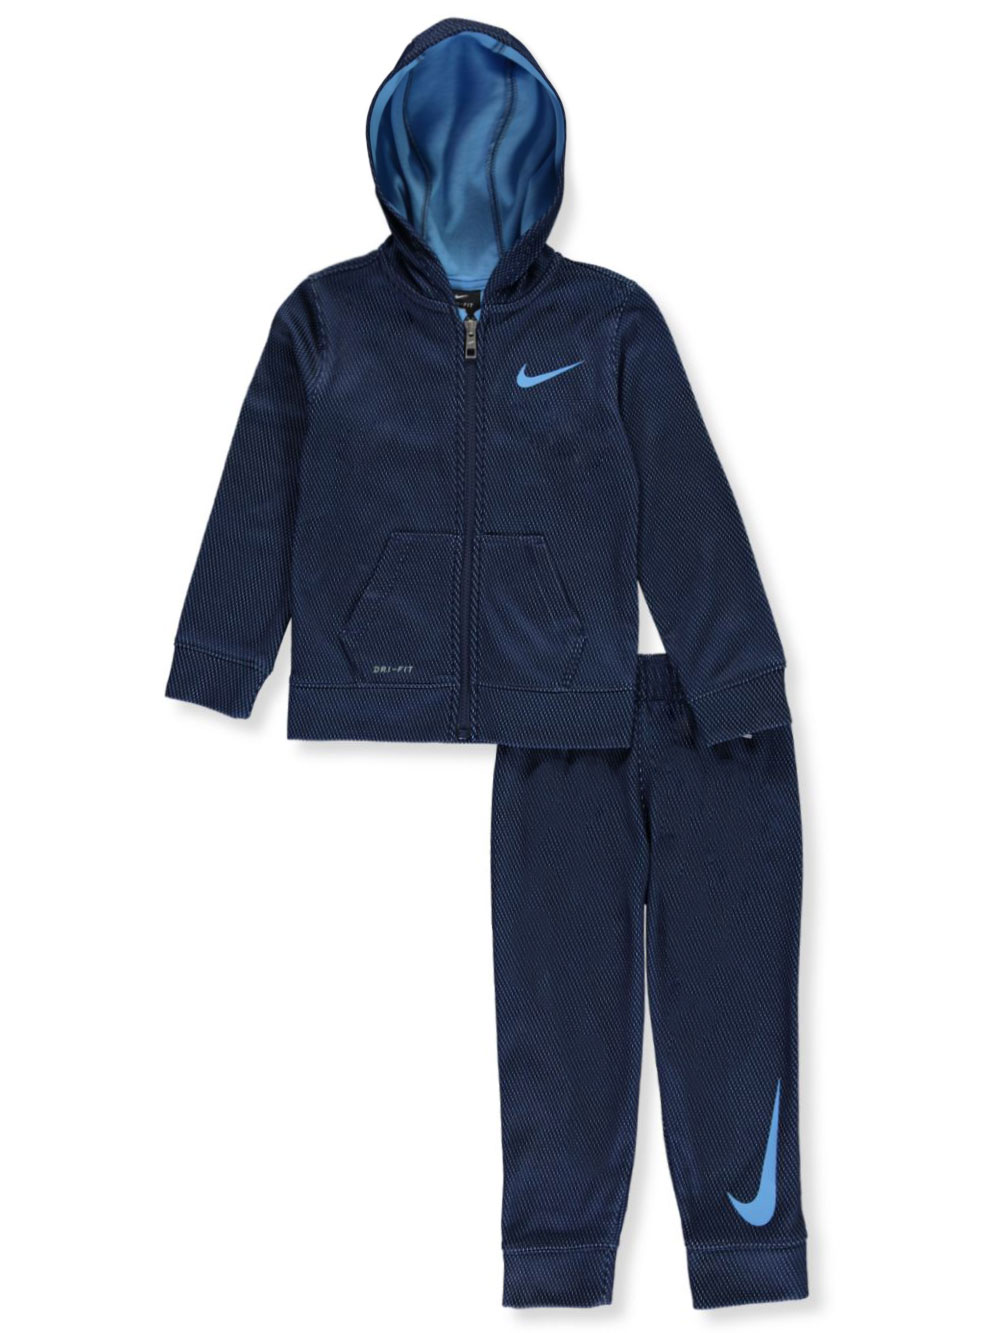 Boys' Dri-Fit 2-Piece Sweatsuit Pants Set